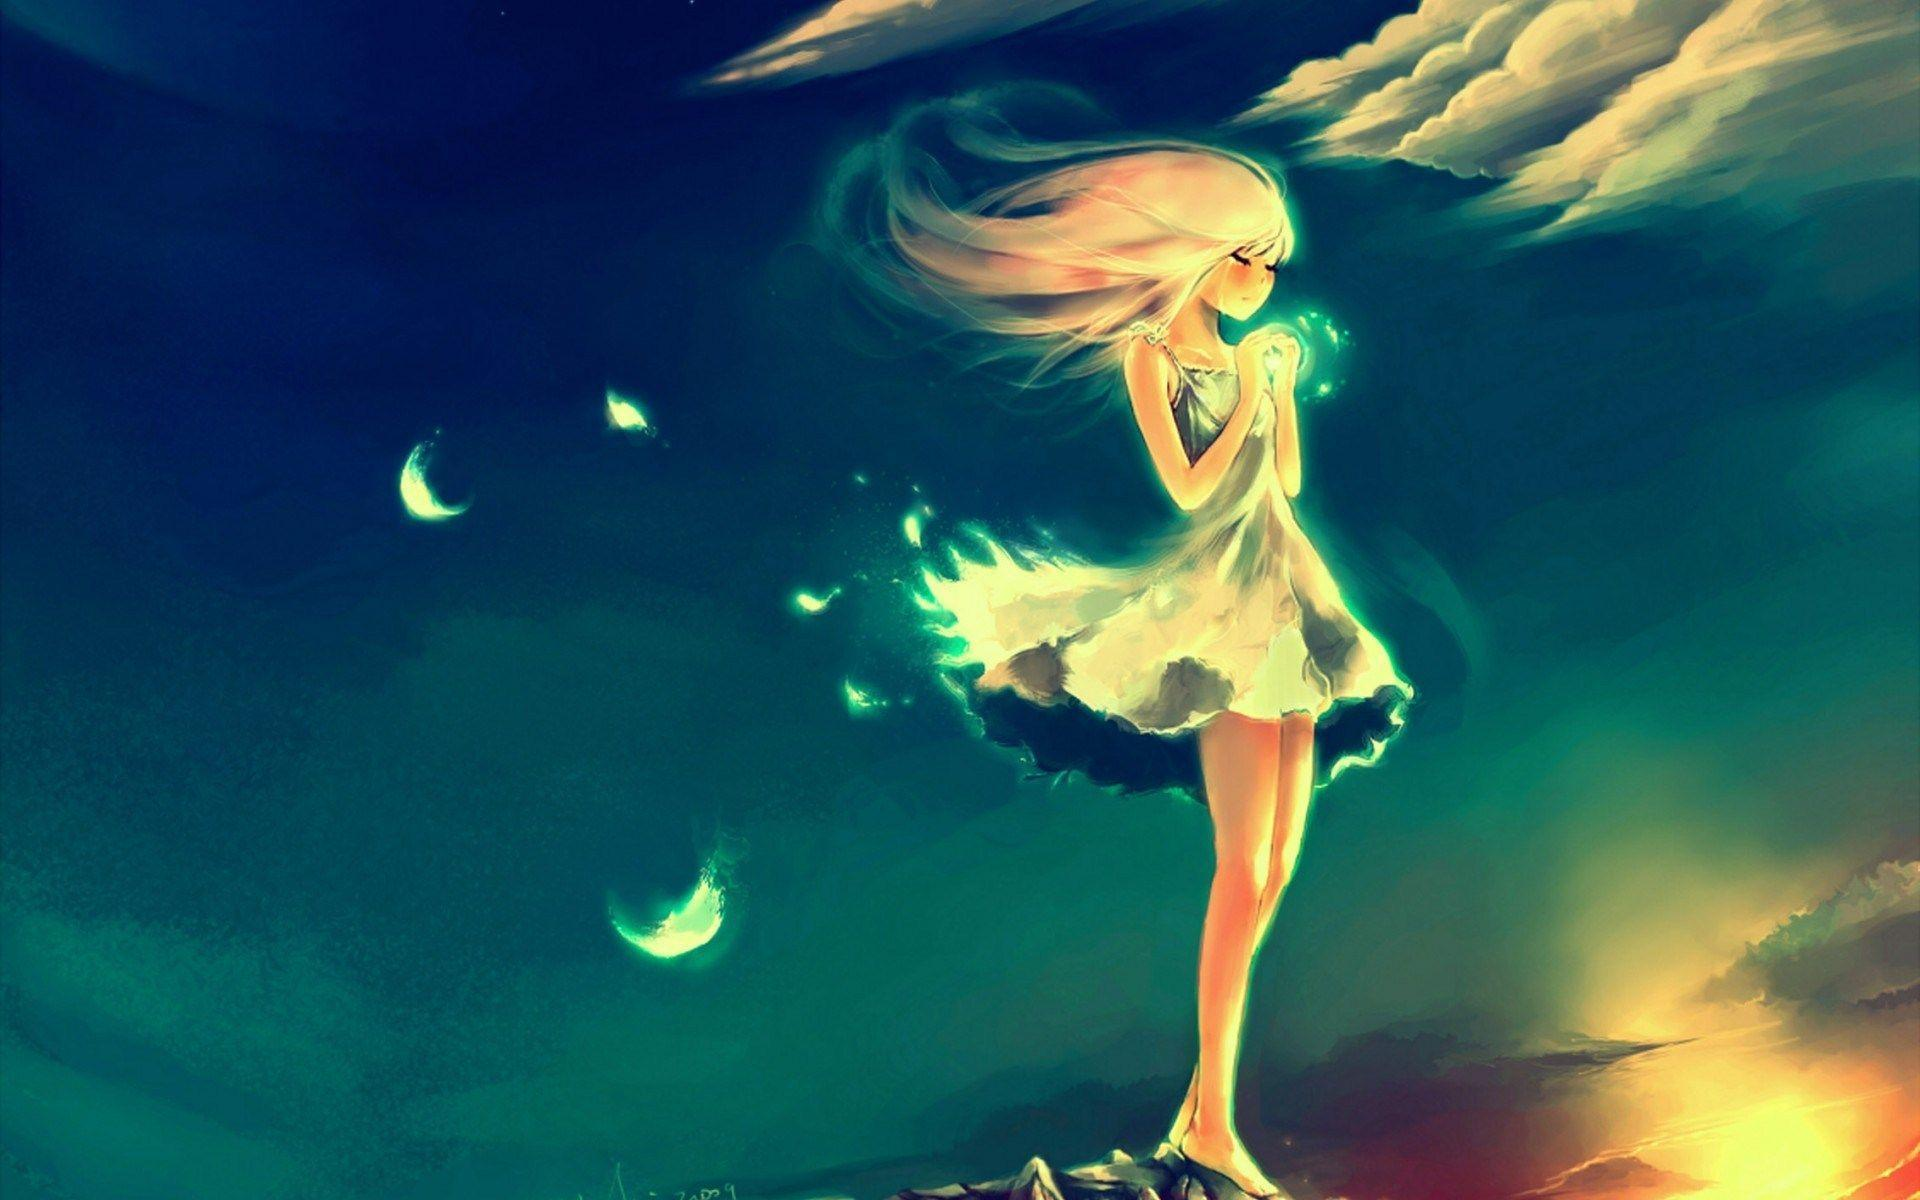 Angel cry alone so sad night sky feather art manga